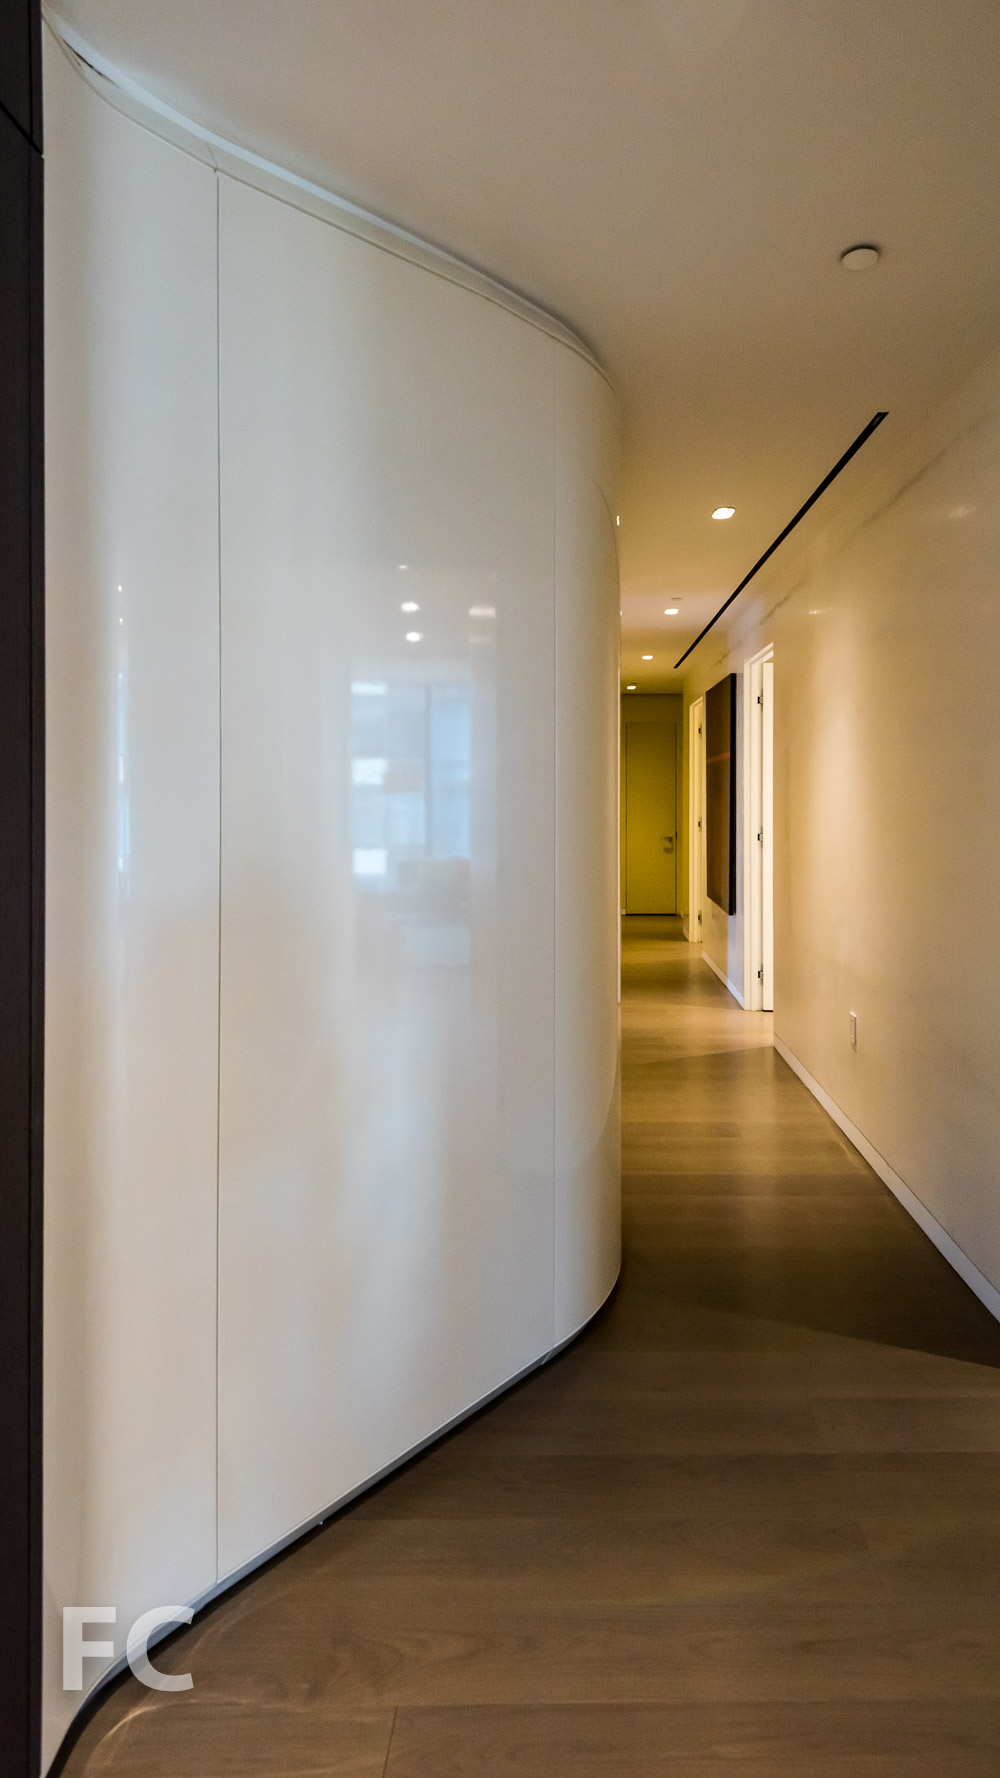 Hallway leading to the secondary bedrooms.